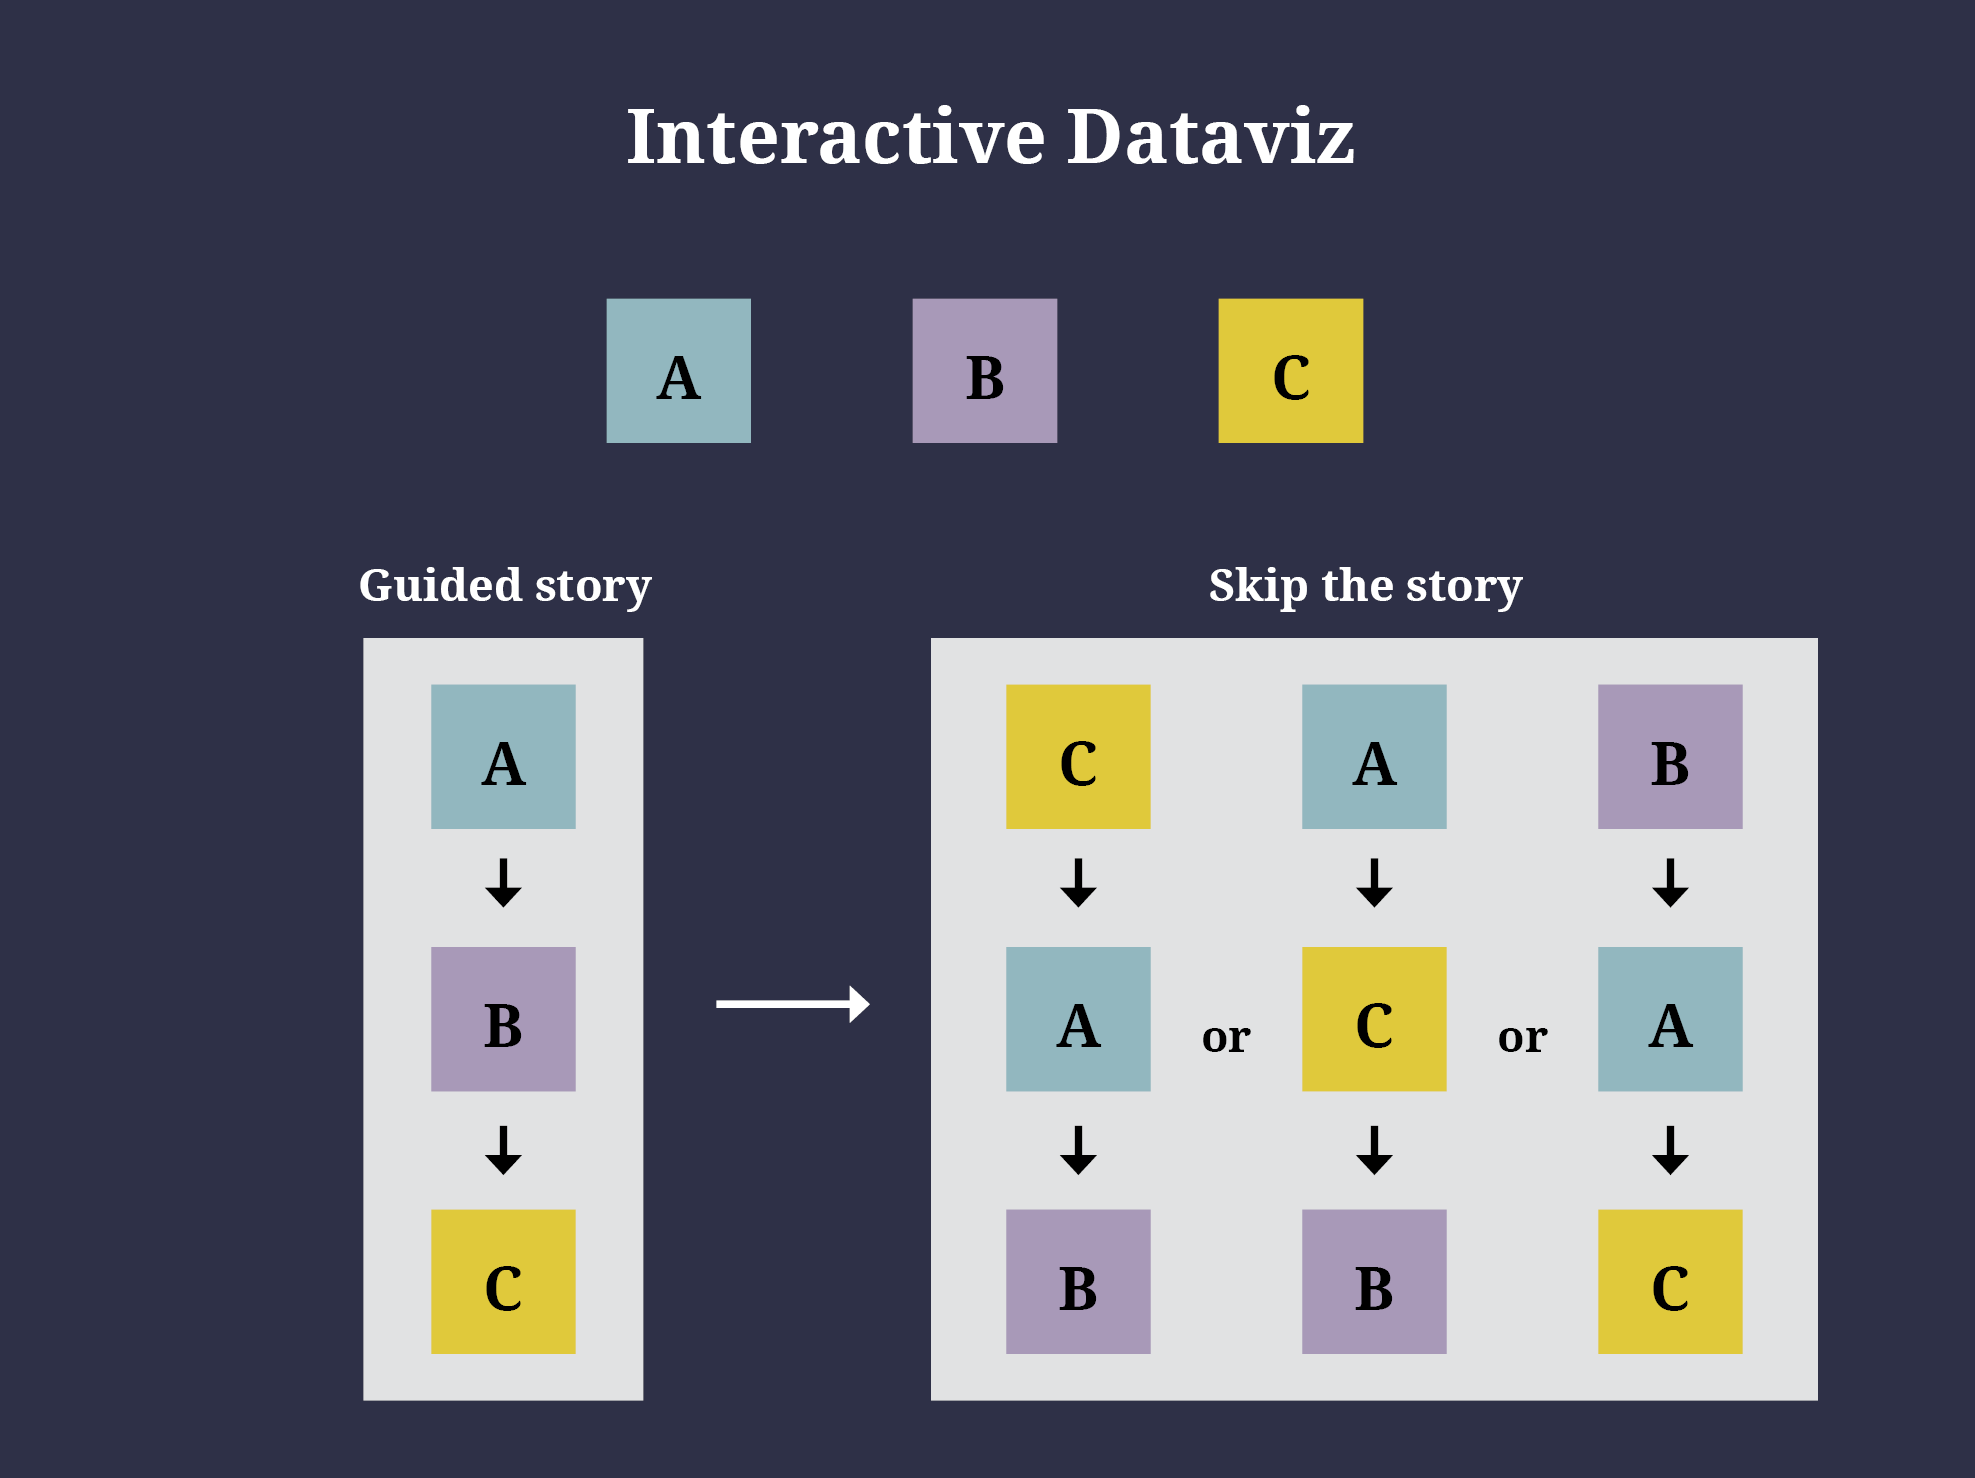 An interactive dataviz can go from A to B to C in story more. In explore mode, it can be C to A to B, A to C to B, etc.